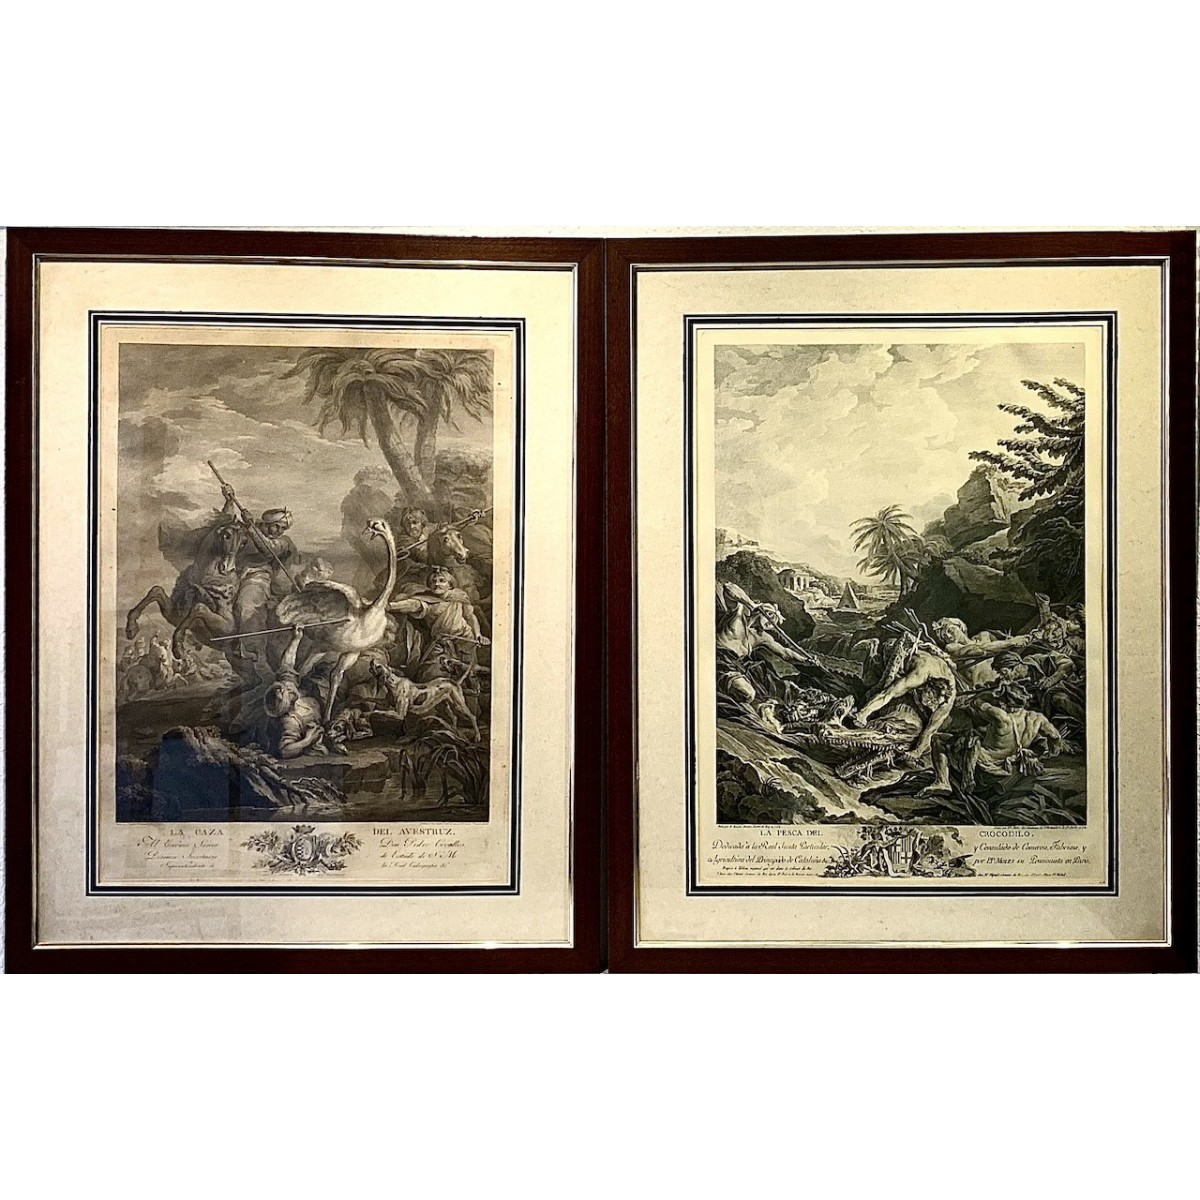 Pair of etching prints from 19th